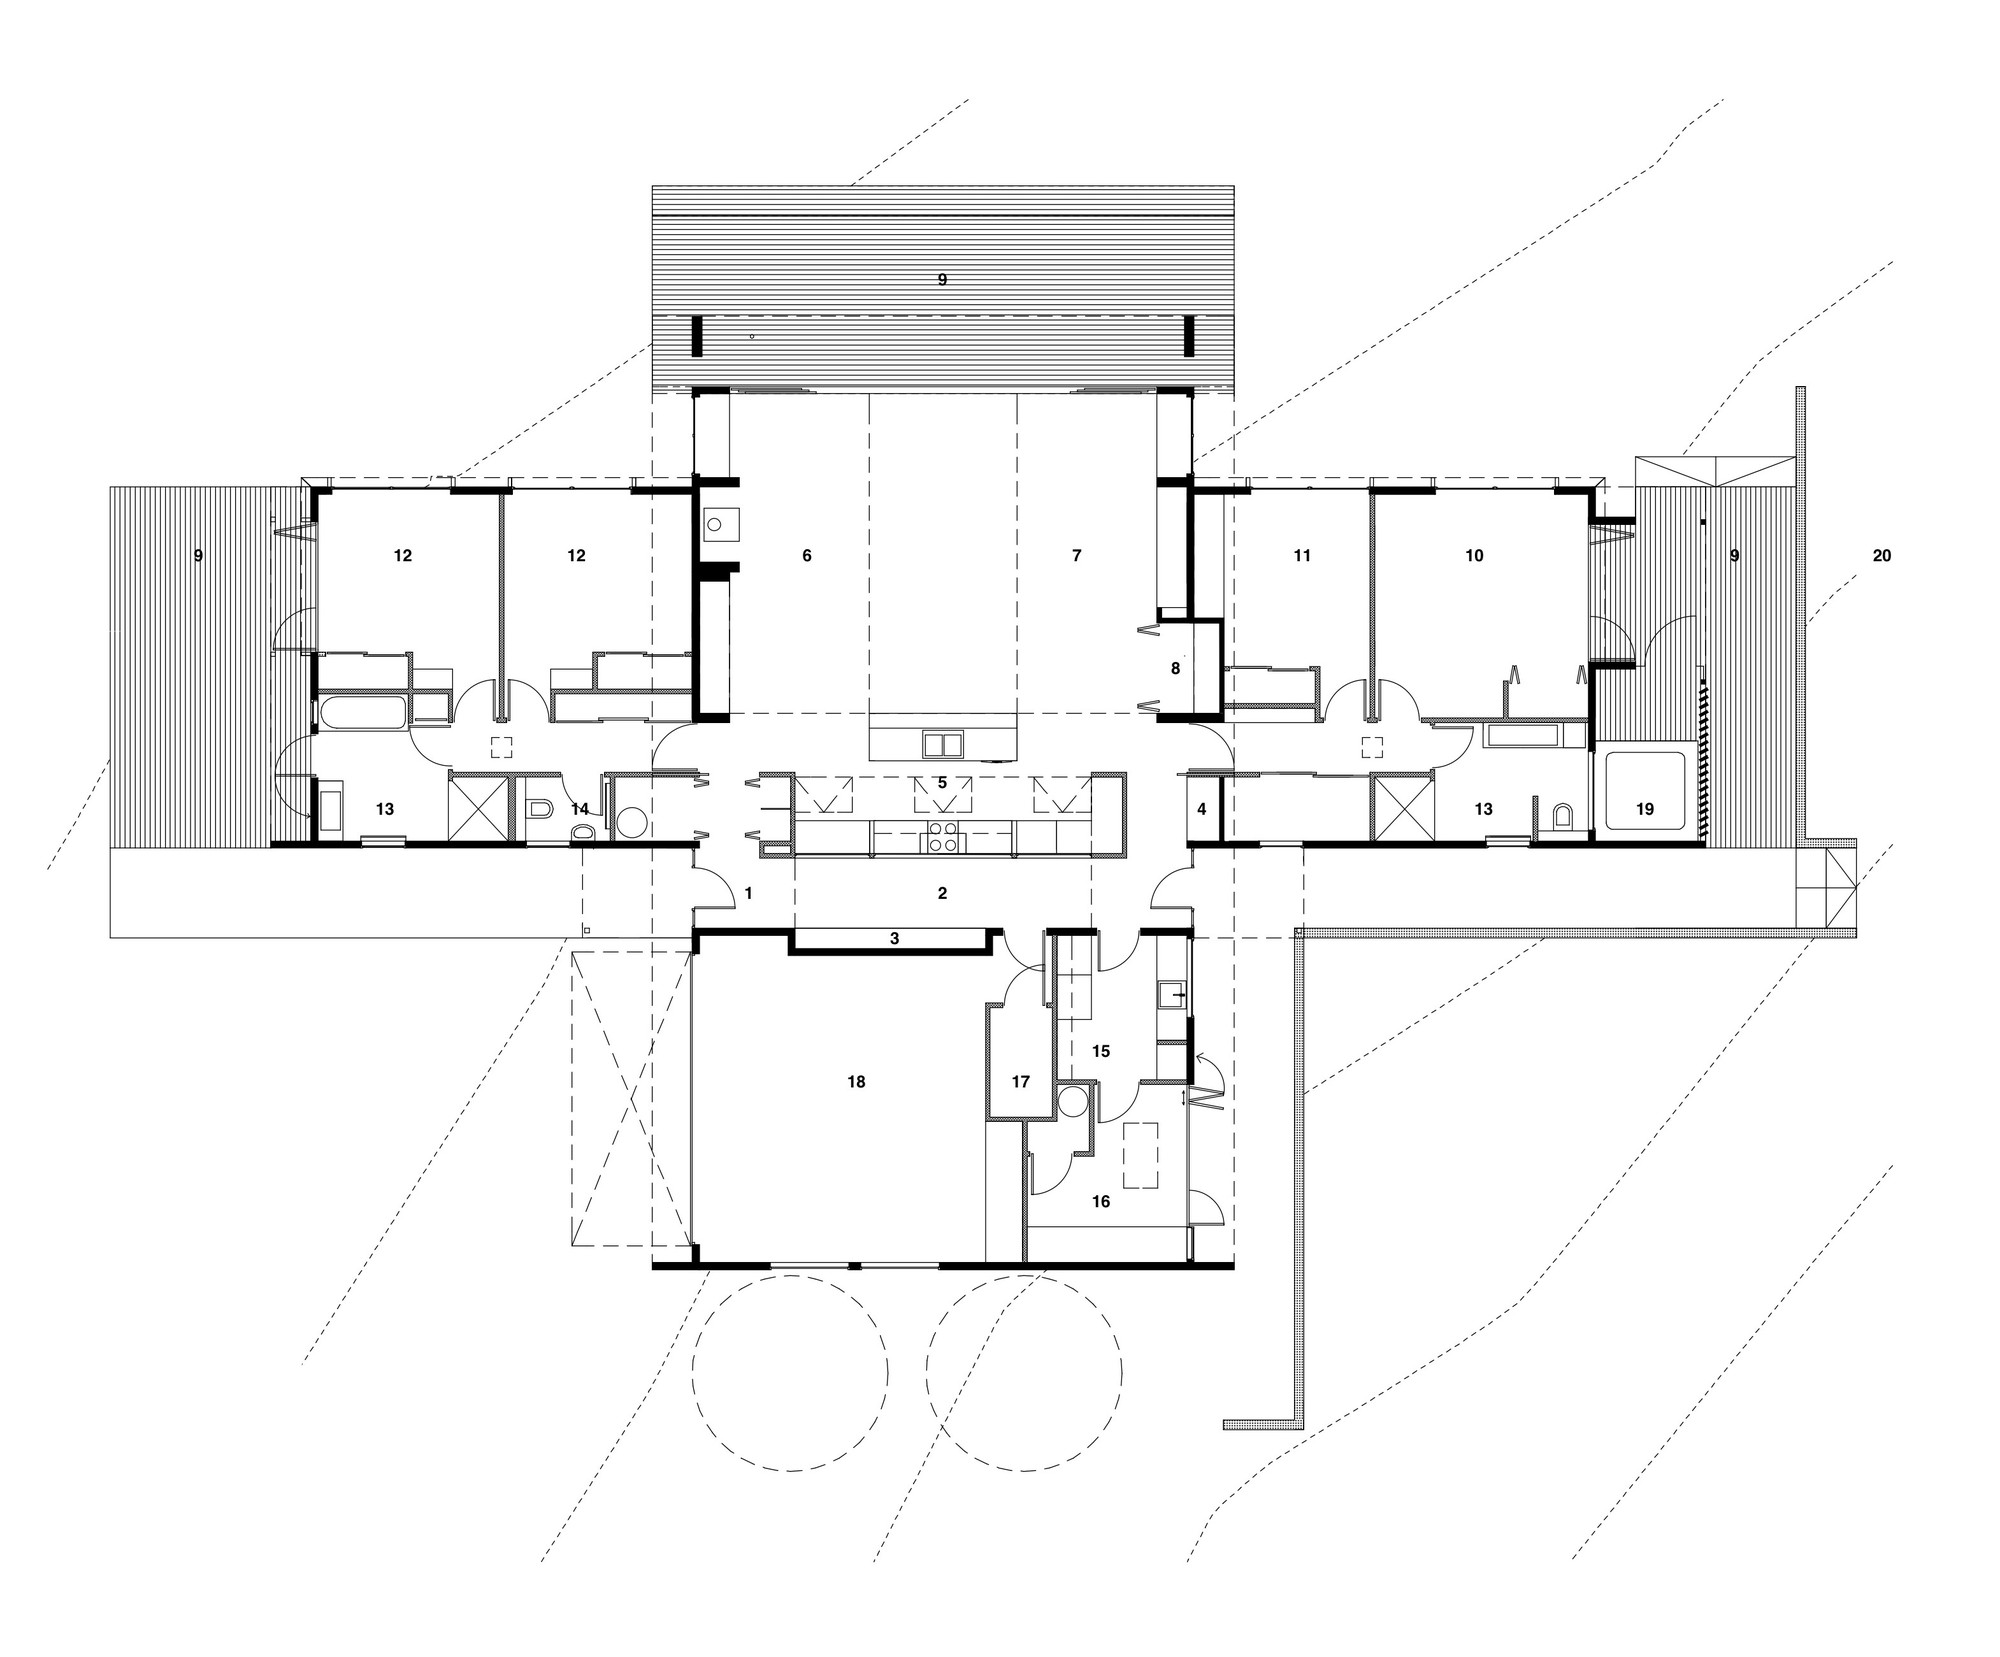 Radman brown house guy herschell architects archdaily for House plan guys